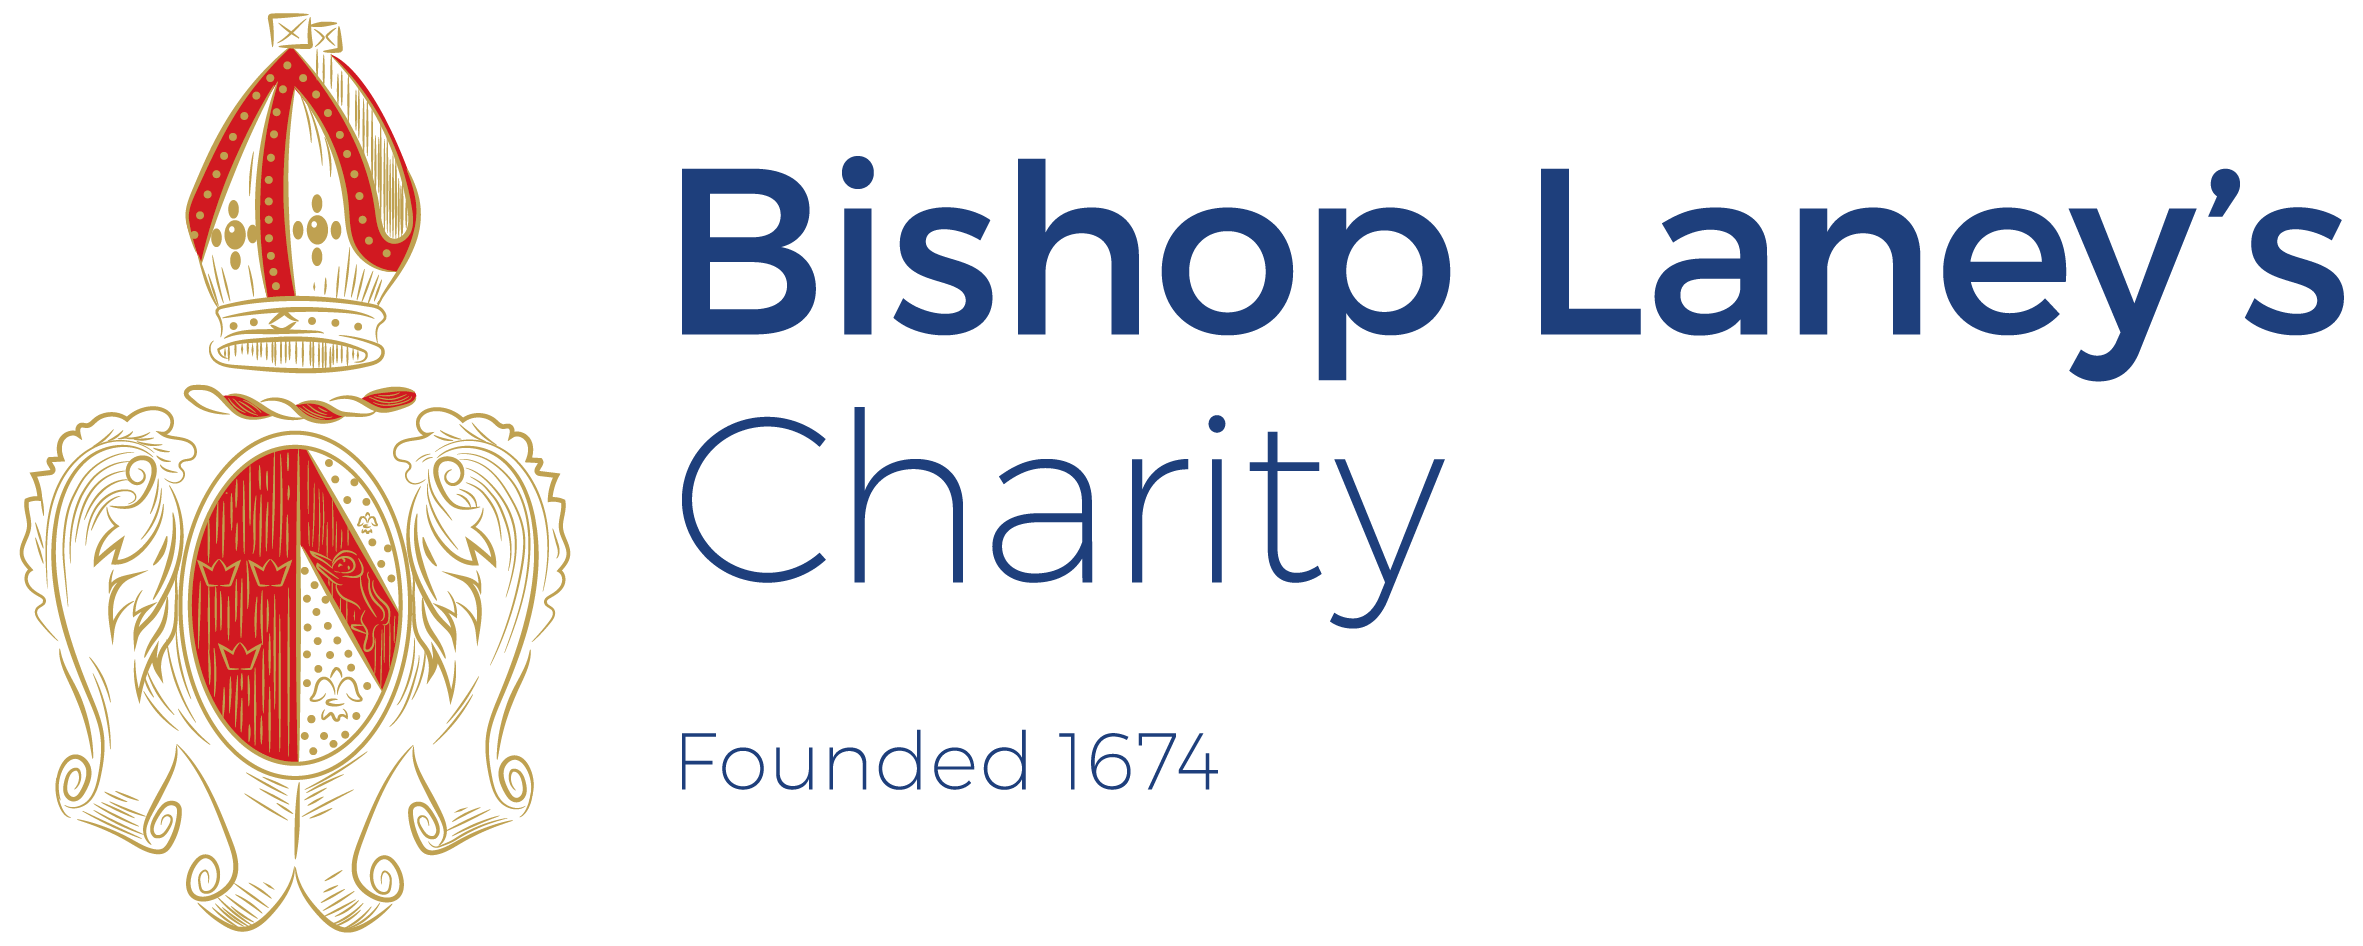 Bishop Laney's Charity